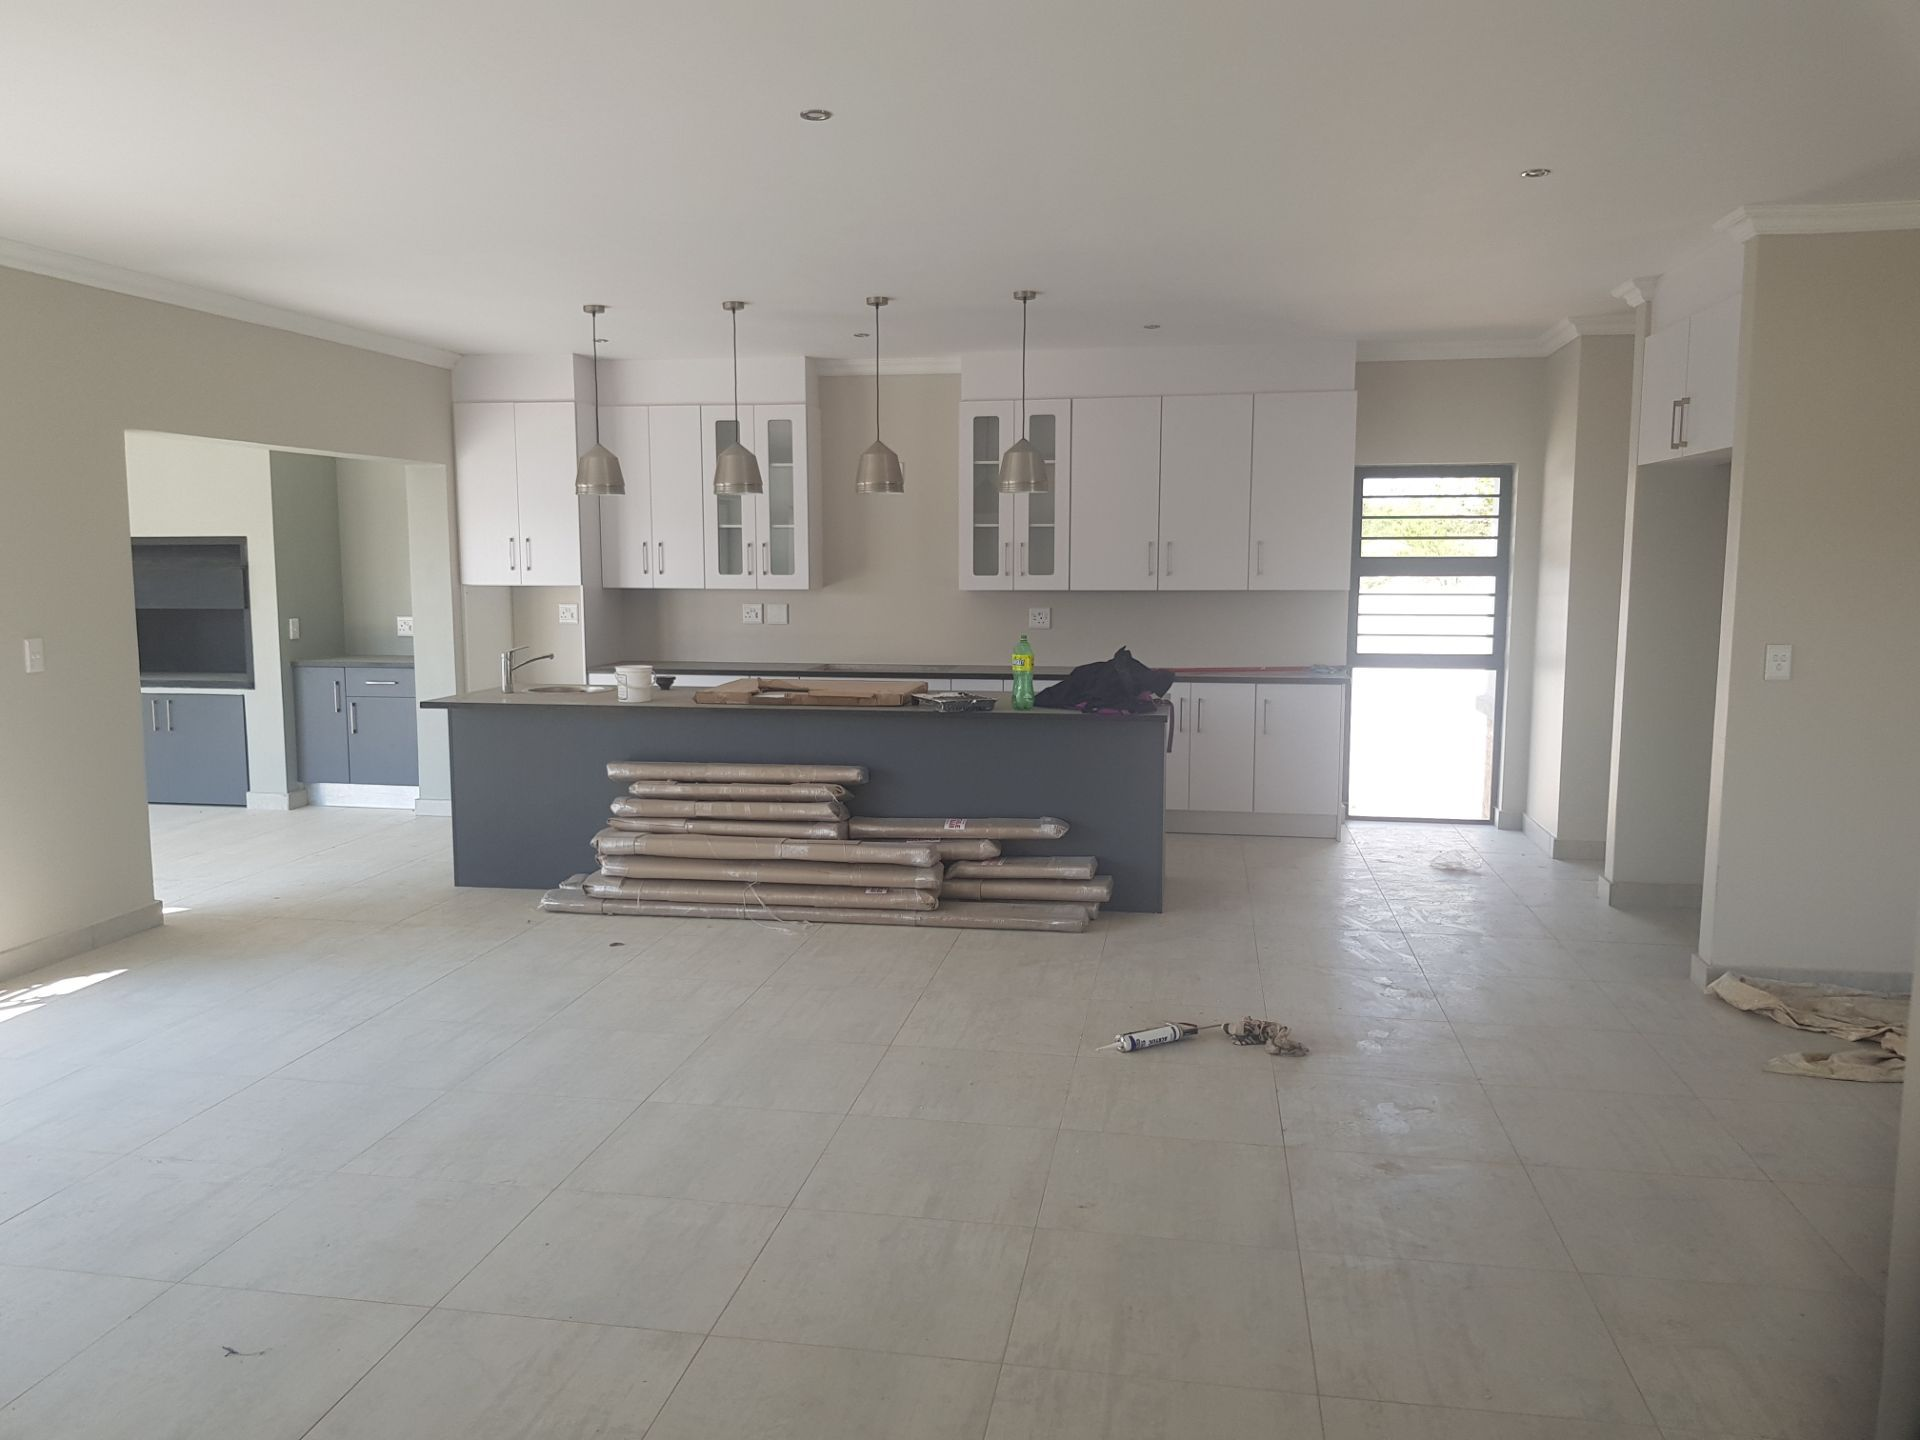 House in Lifestyle Estate - 20190920_130332.jpg